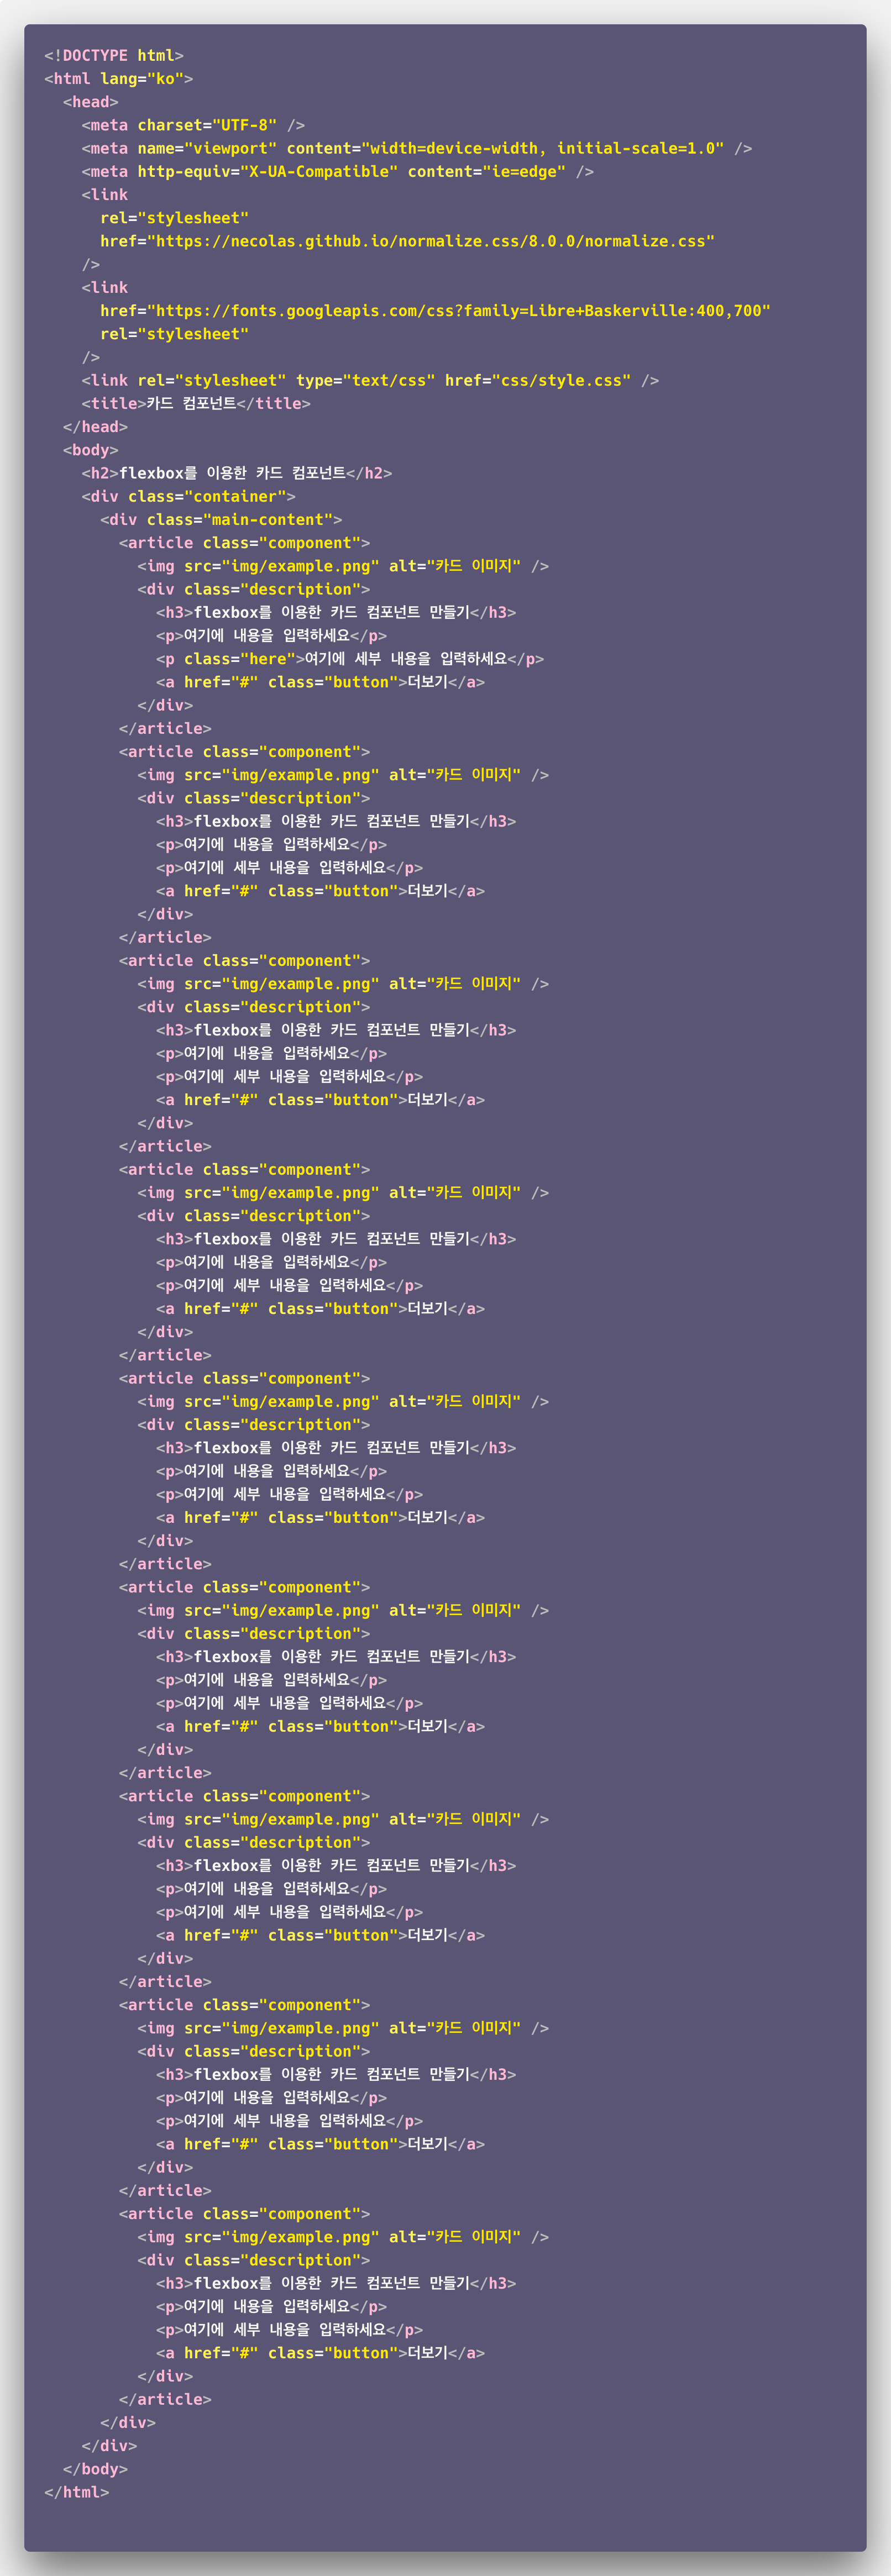 final_html.png